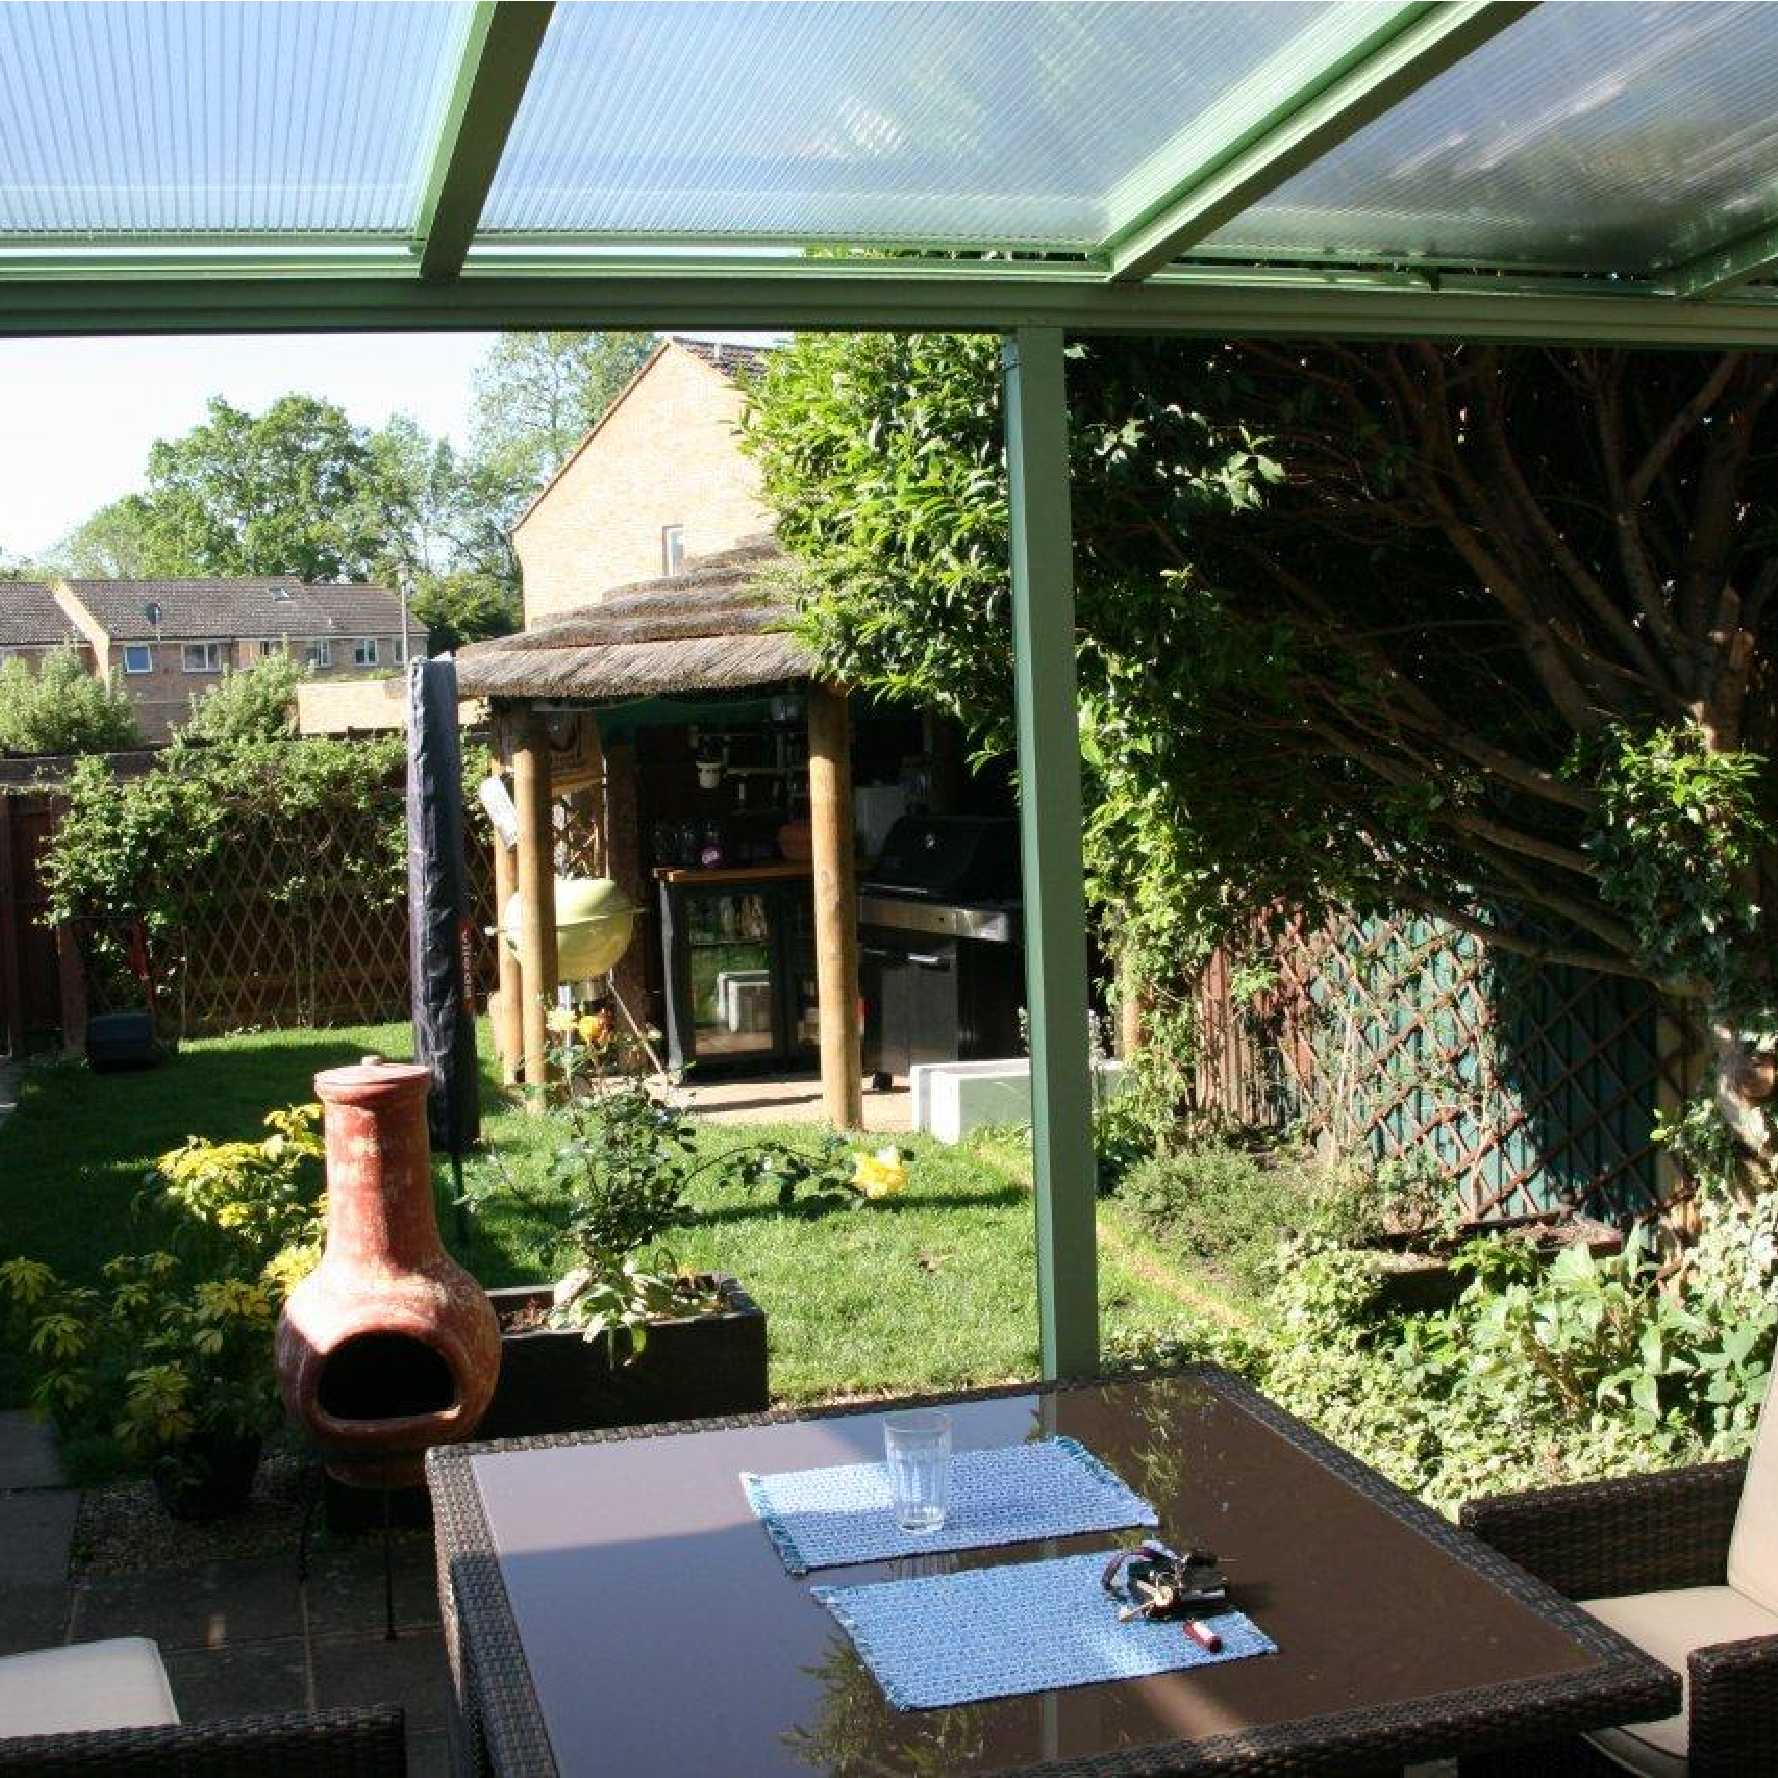 Affordable Omega Smart White Lean-To Canopy with 16mm Polycarbonate Glazing - 7.4m (W) x 3.0m (P), (4) Supporting Posts